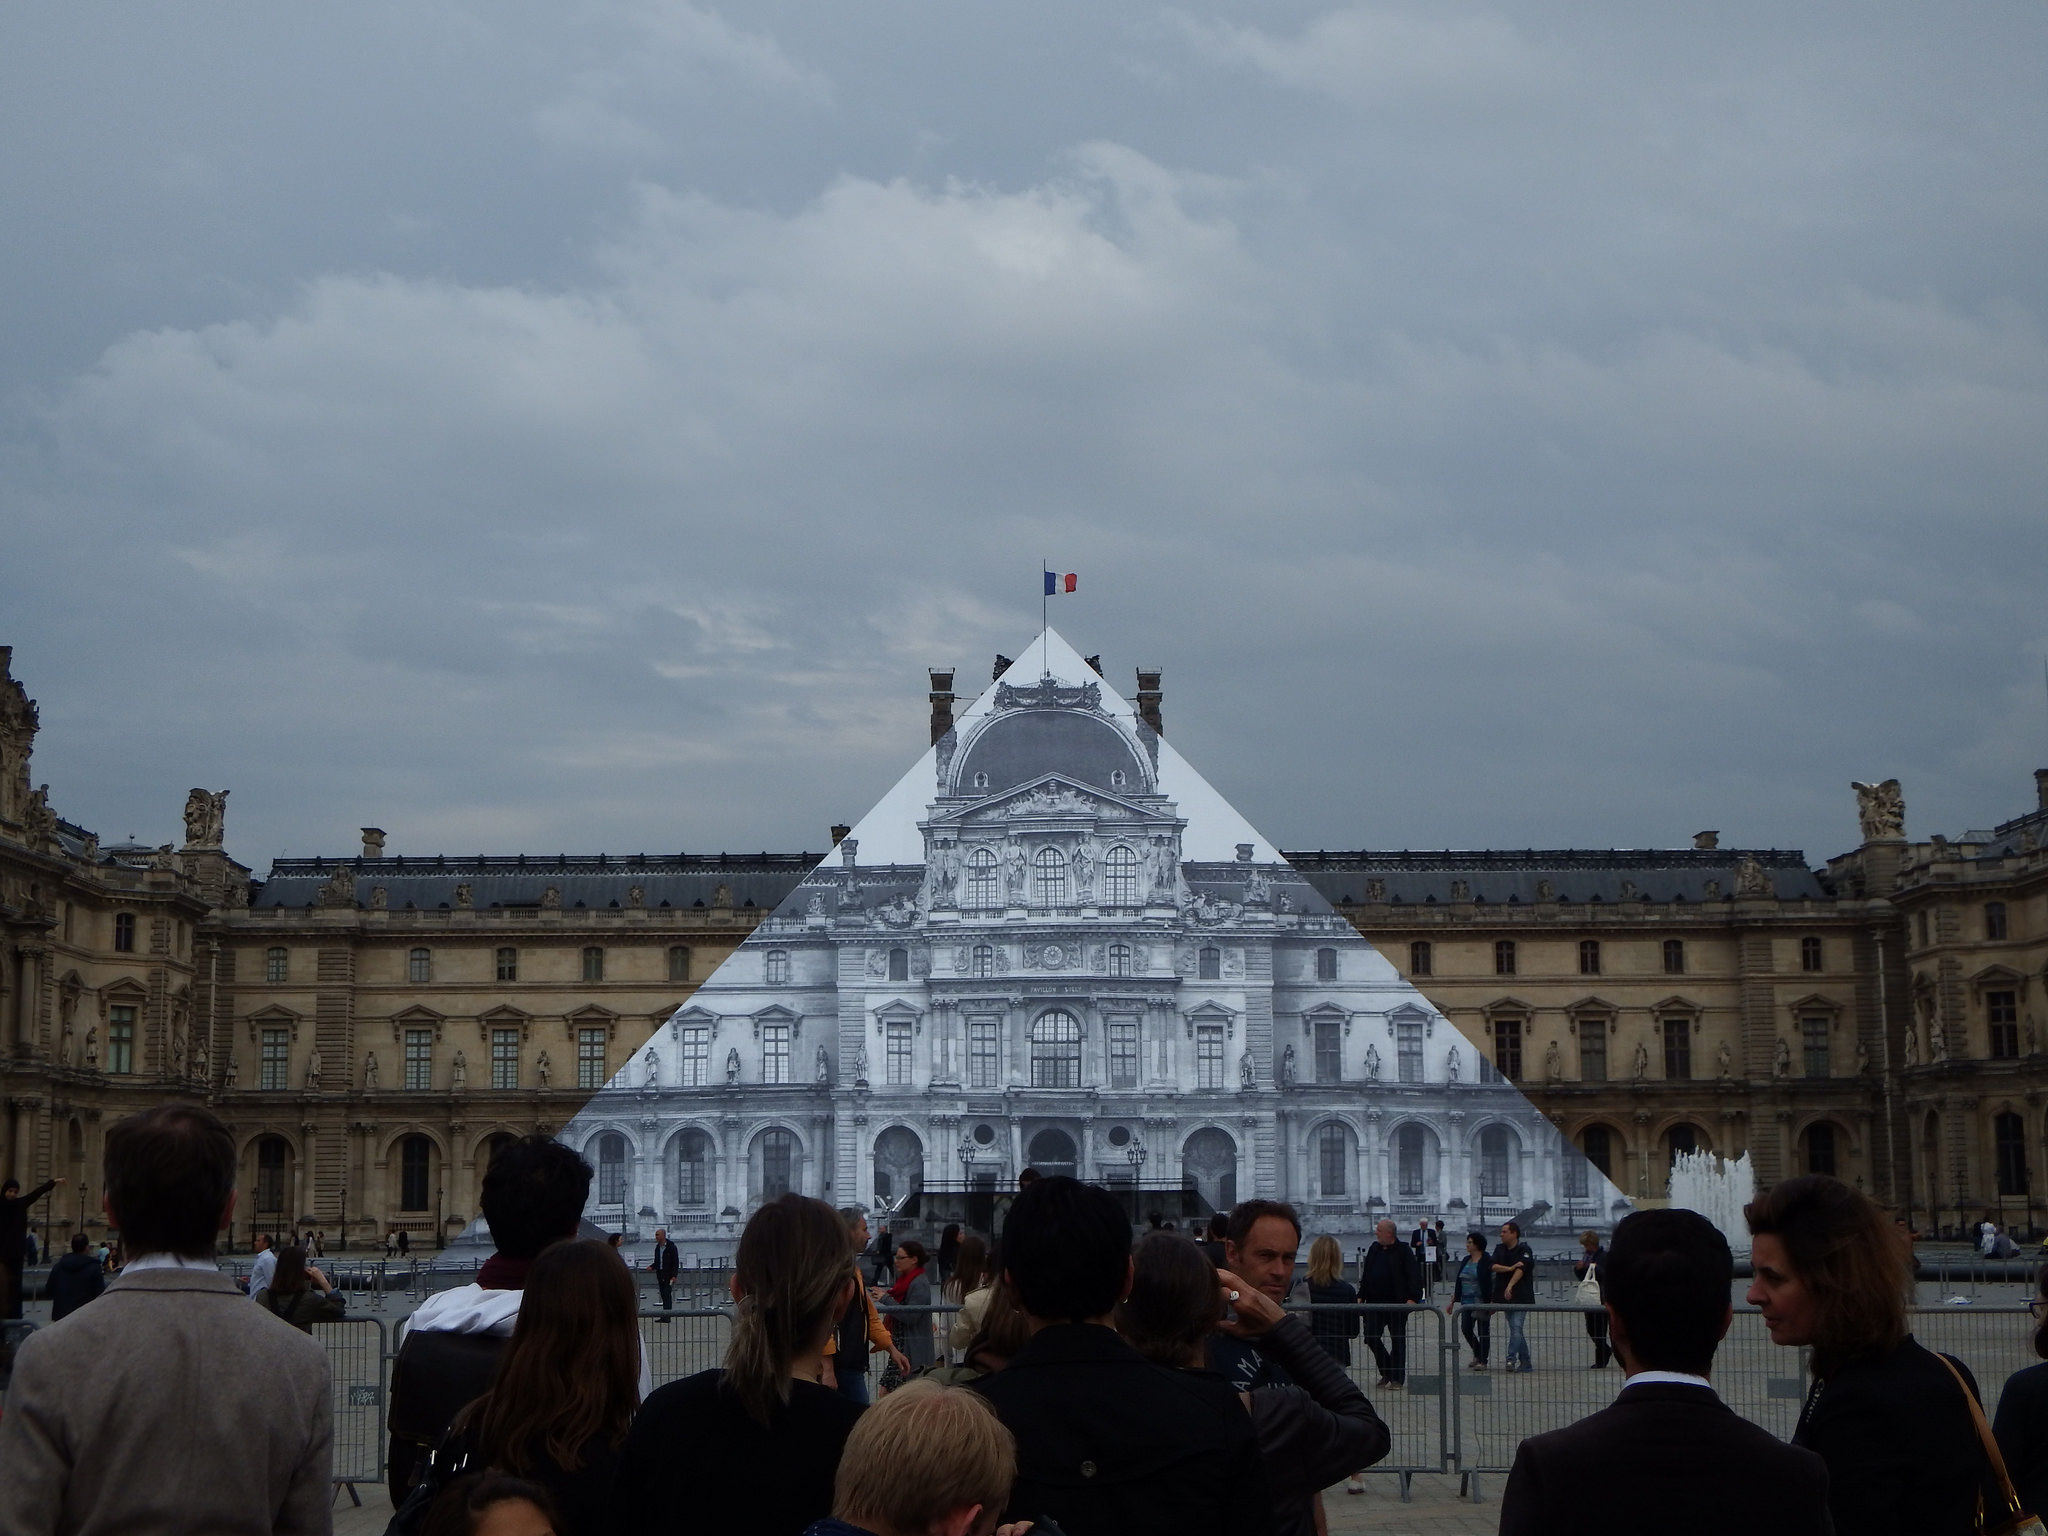 La Piramide del Louvre modificata da JR nel 2016. Ph. Flickr CC by fdecomite